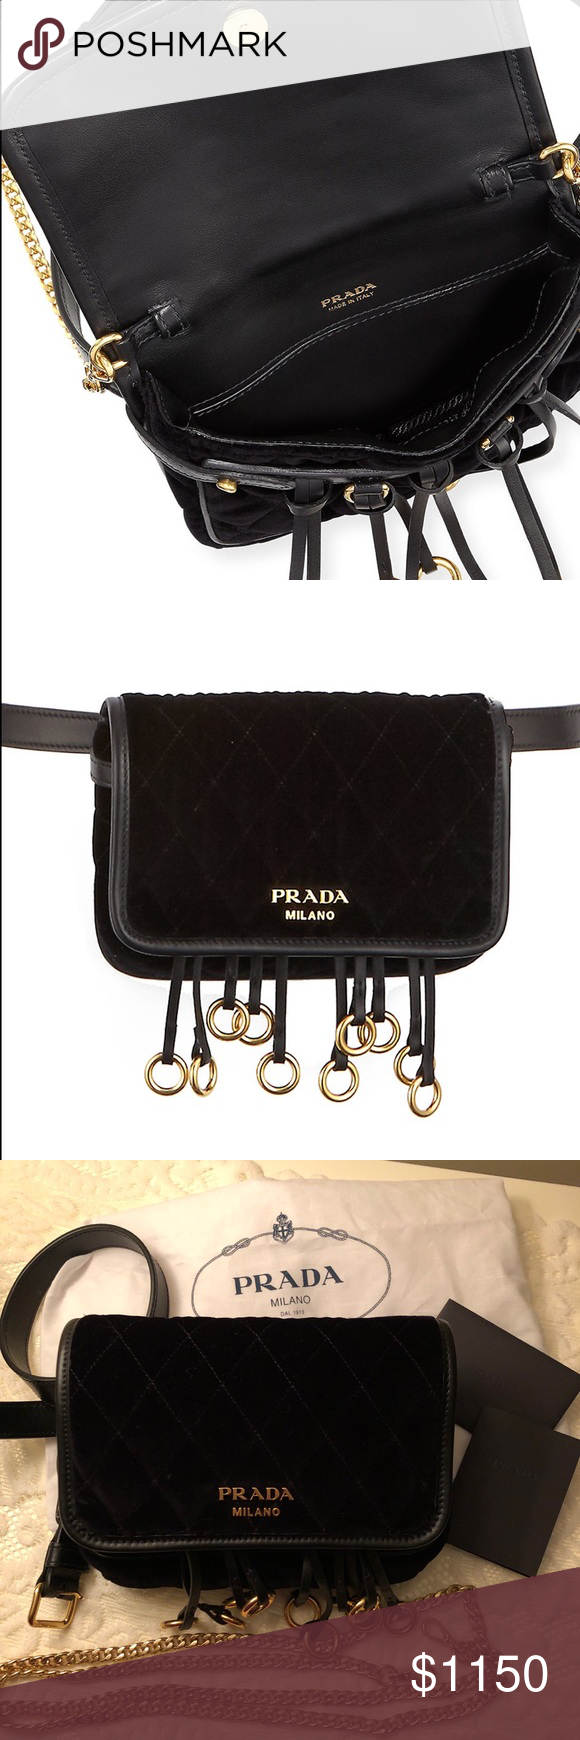 c4846686f9a7 Prada quilted velvet belt bag and crossbody Bag Prada quilted velvet belt  bag and or Crossbody Chain with calf leather trim. Adjustable waist belt.